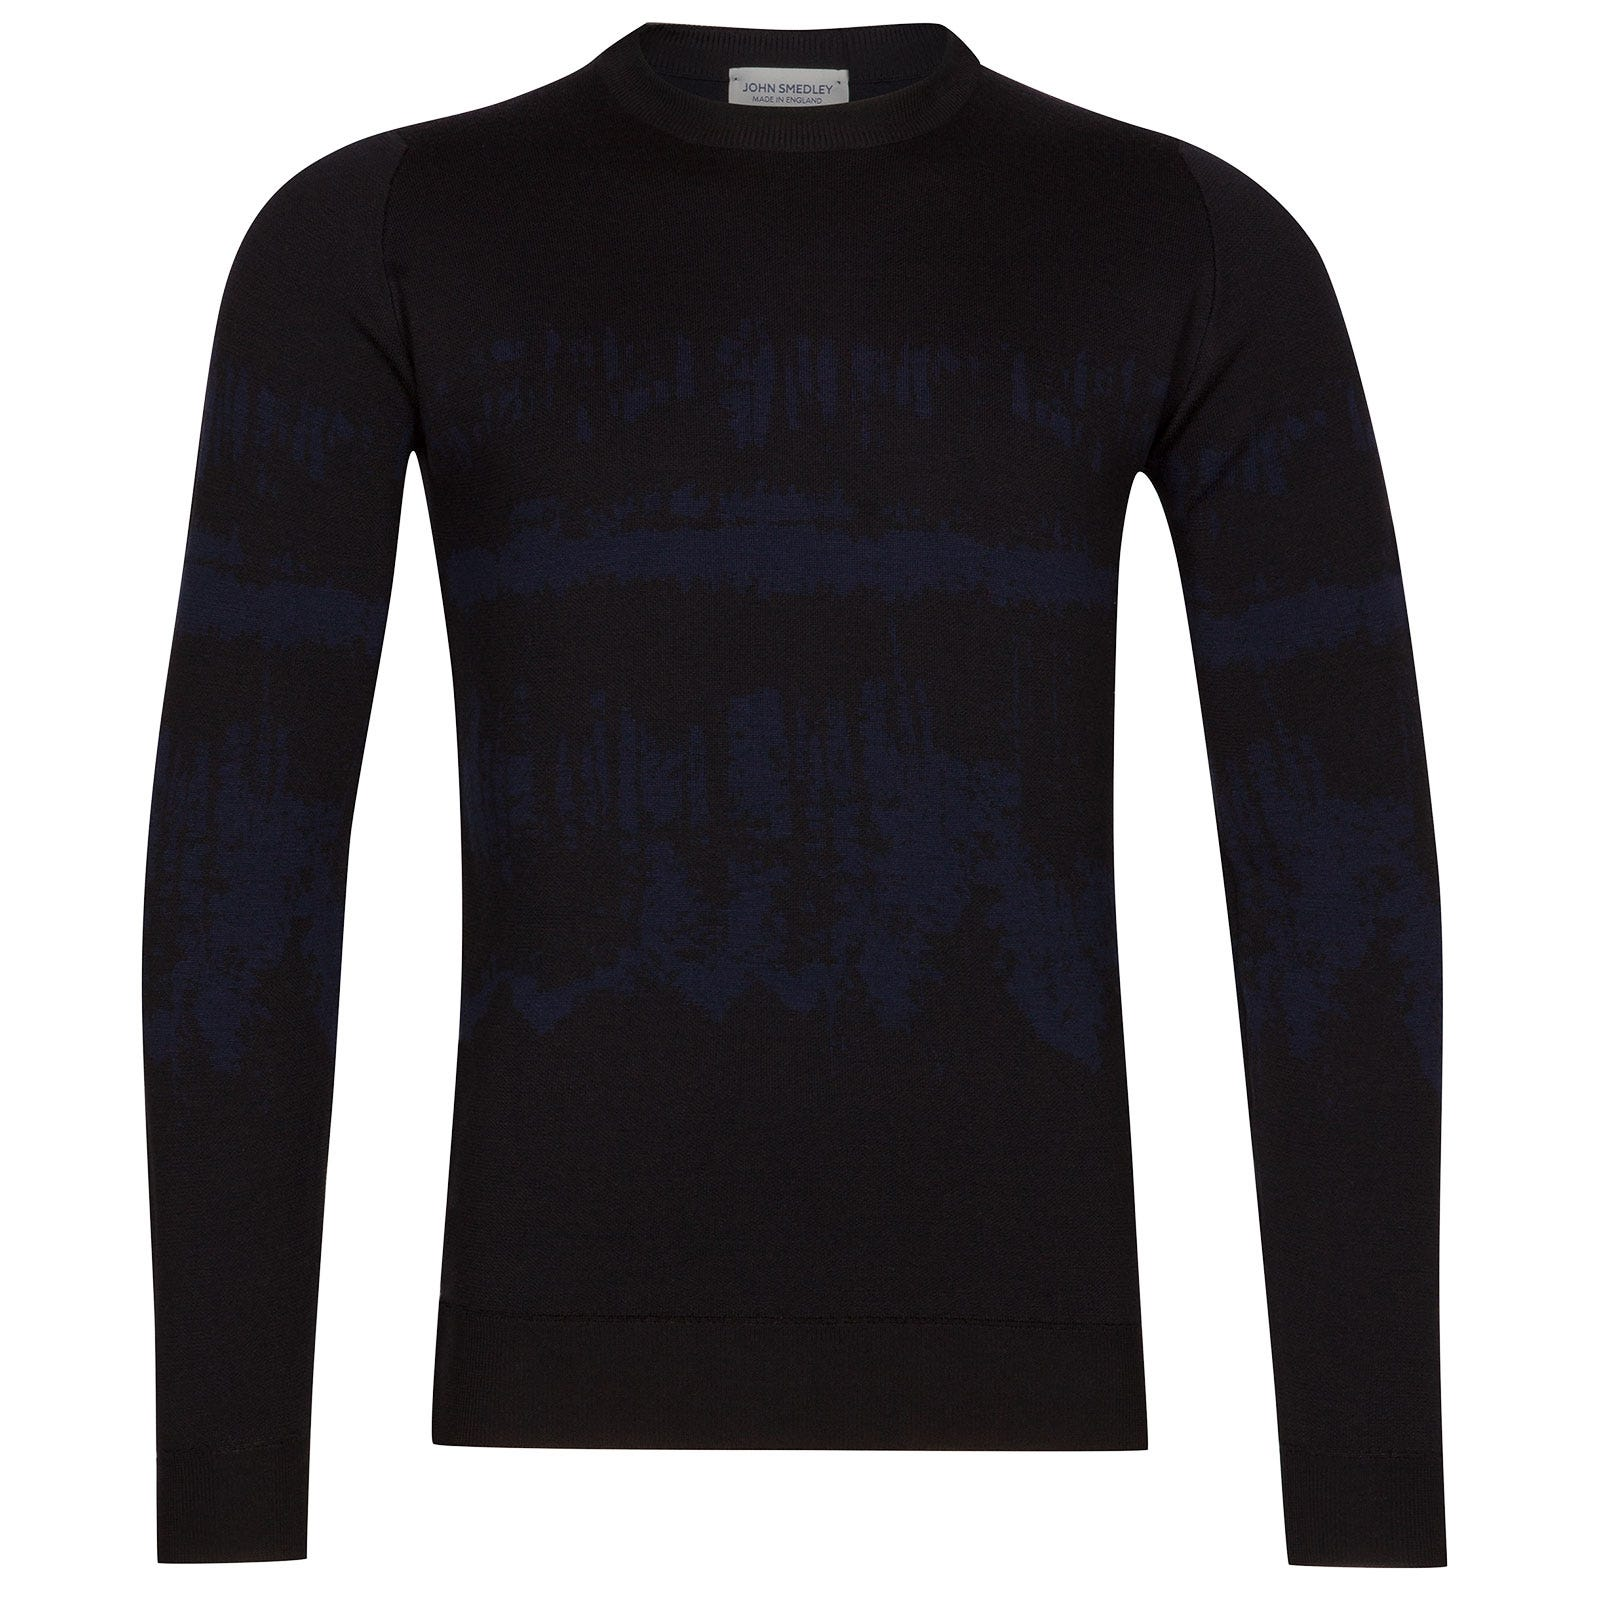 John Smedley girling Merino Wool Pullover in Black/Midnight-M